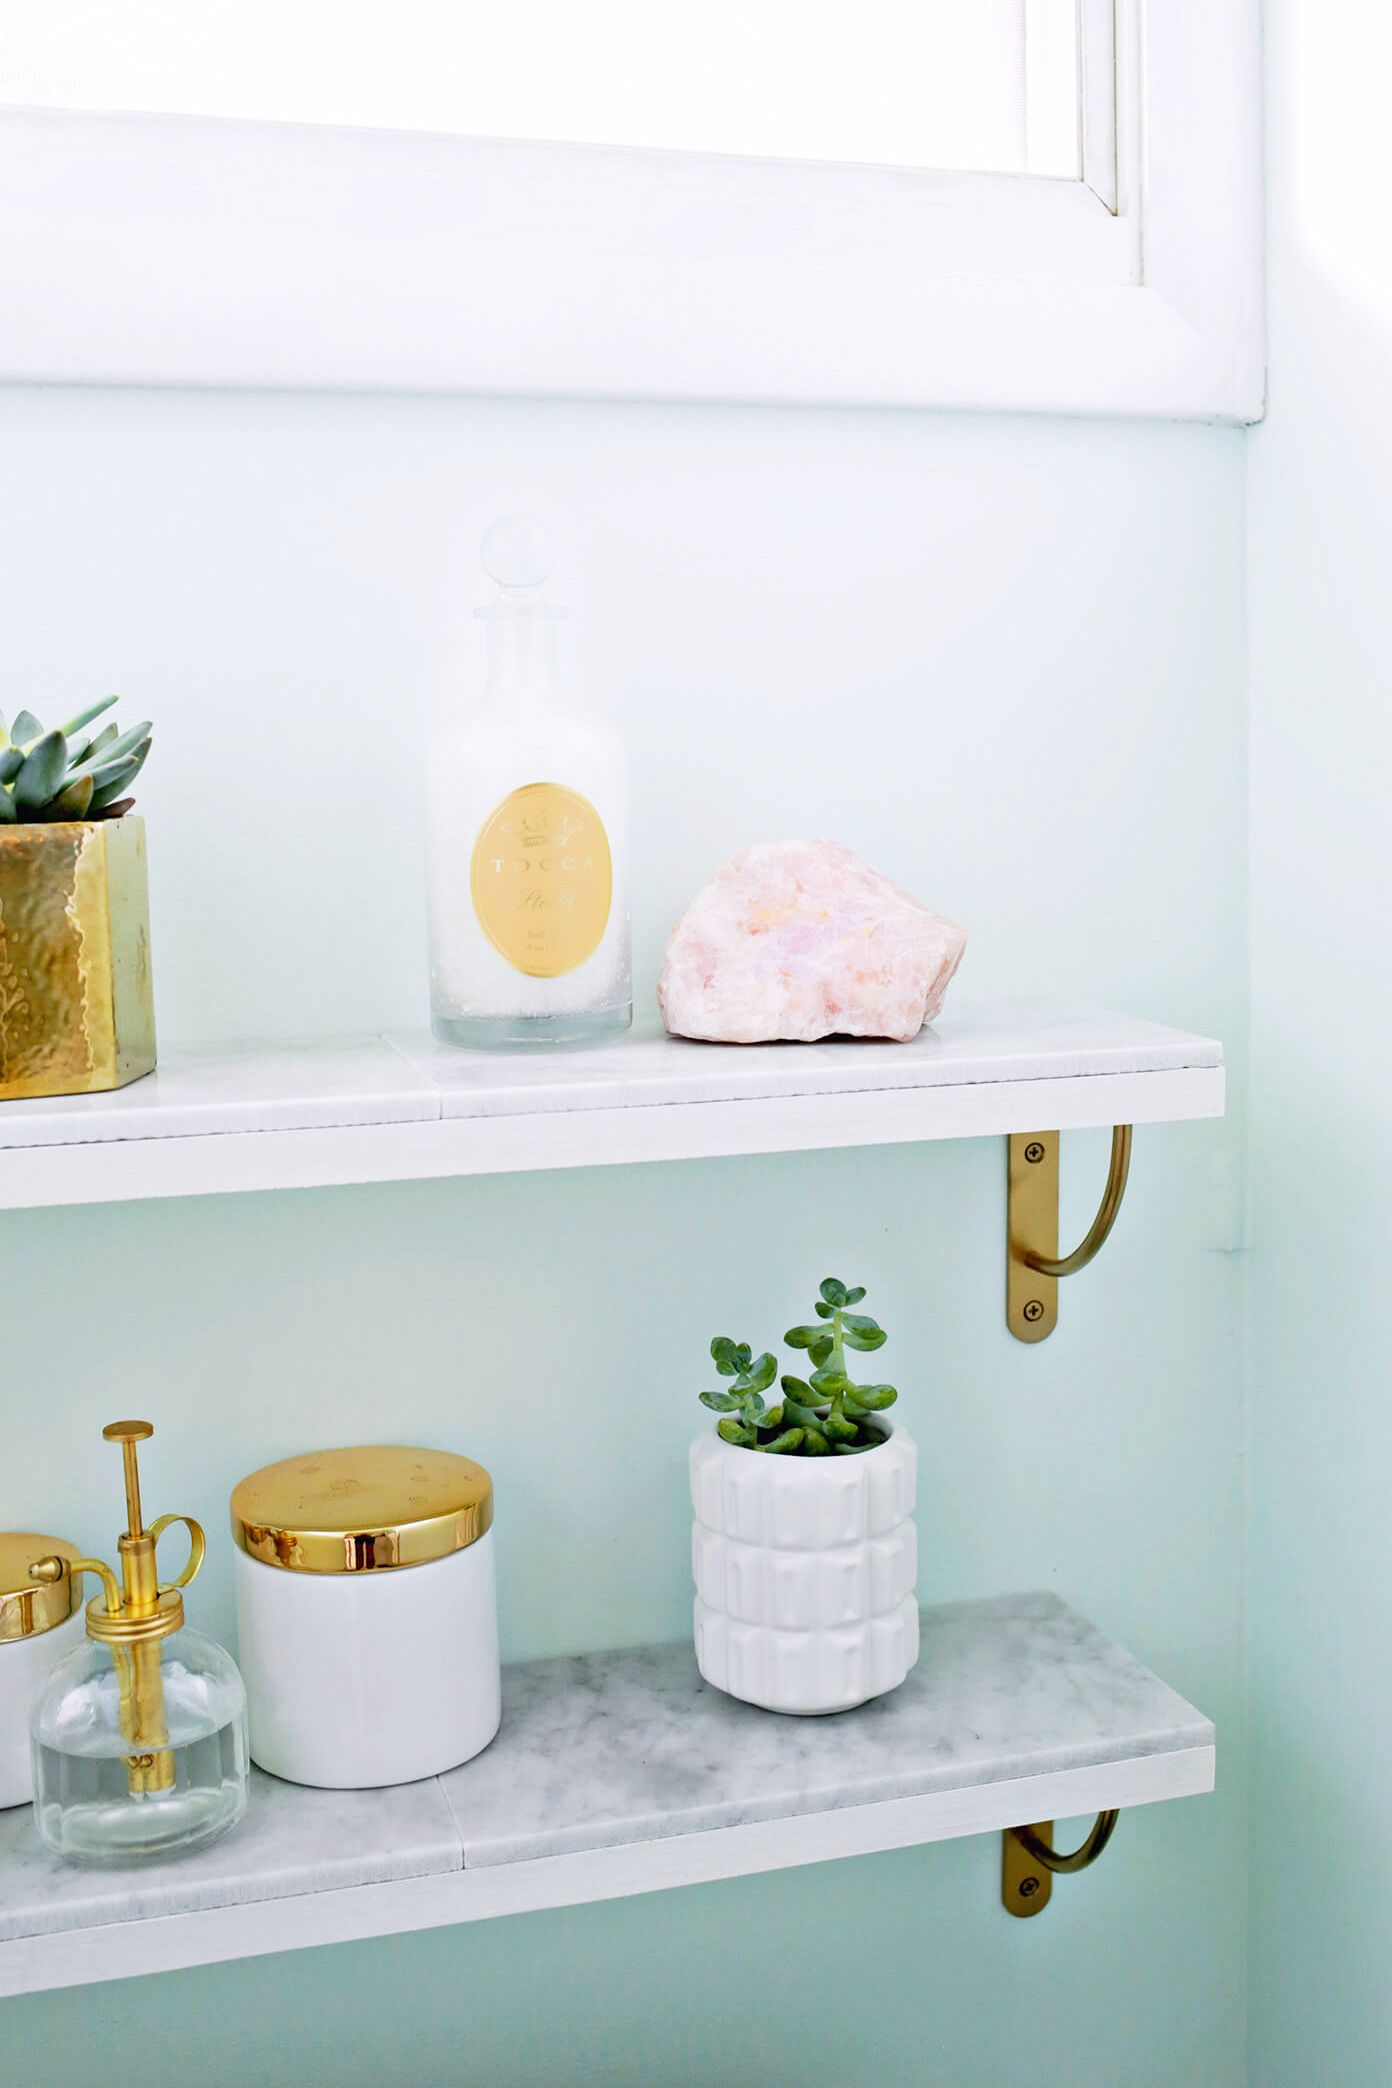 Marble Shelf Extravaganza - Inspiring Design Suggestions